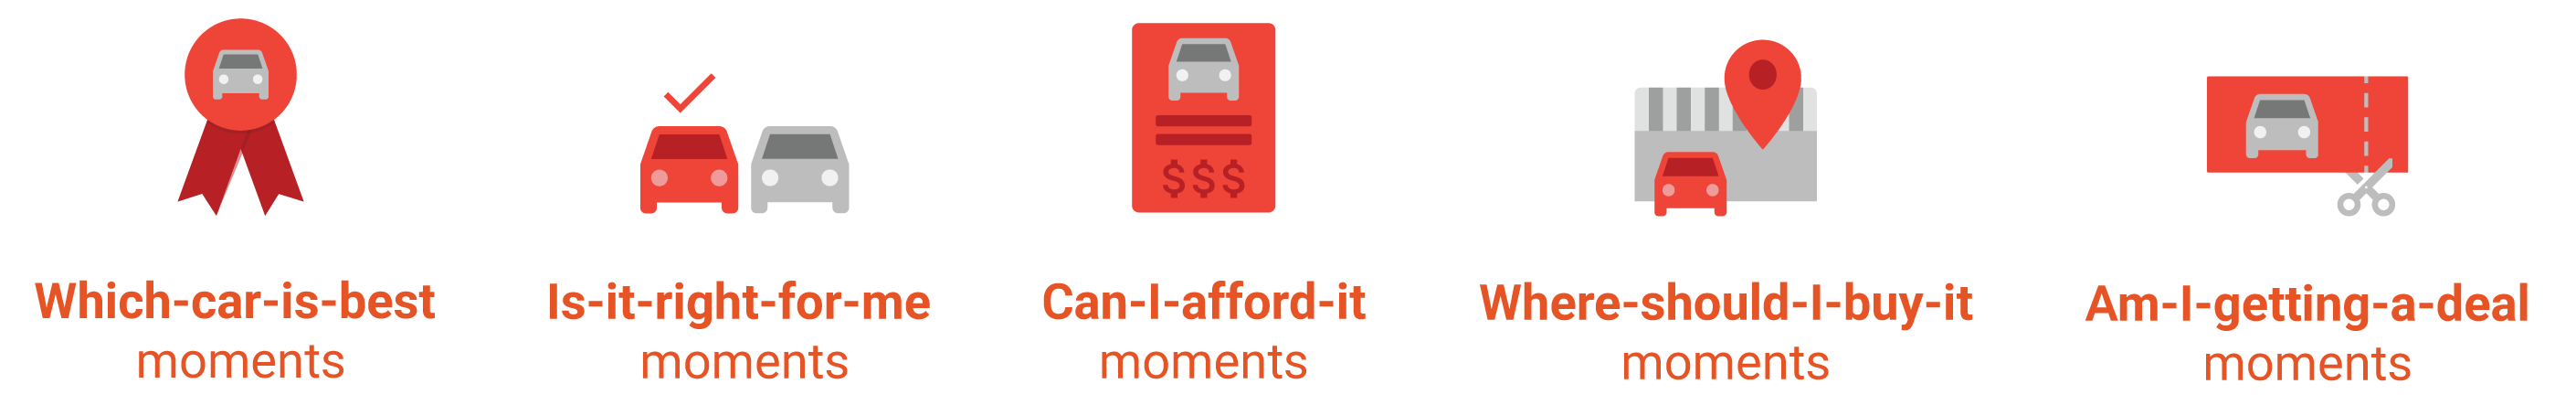 Car Shopping Micro-Moments